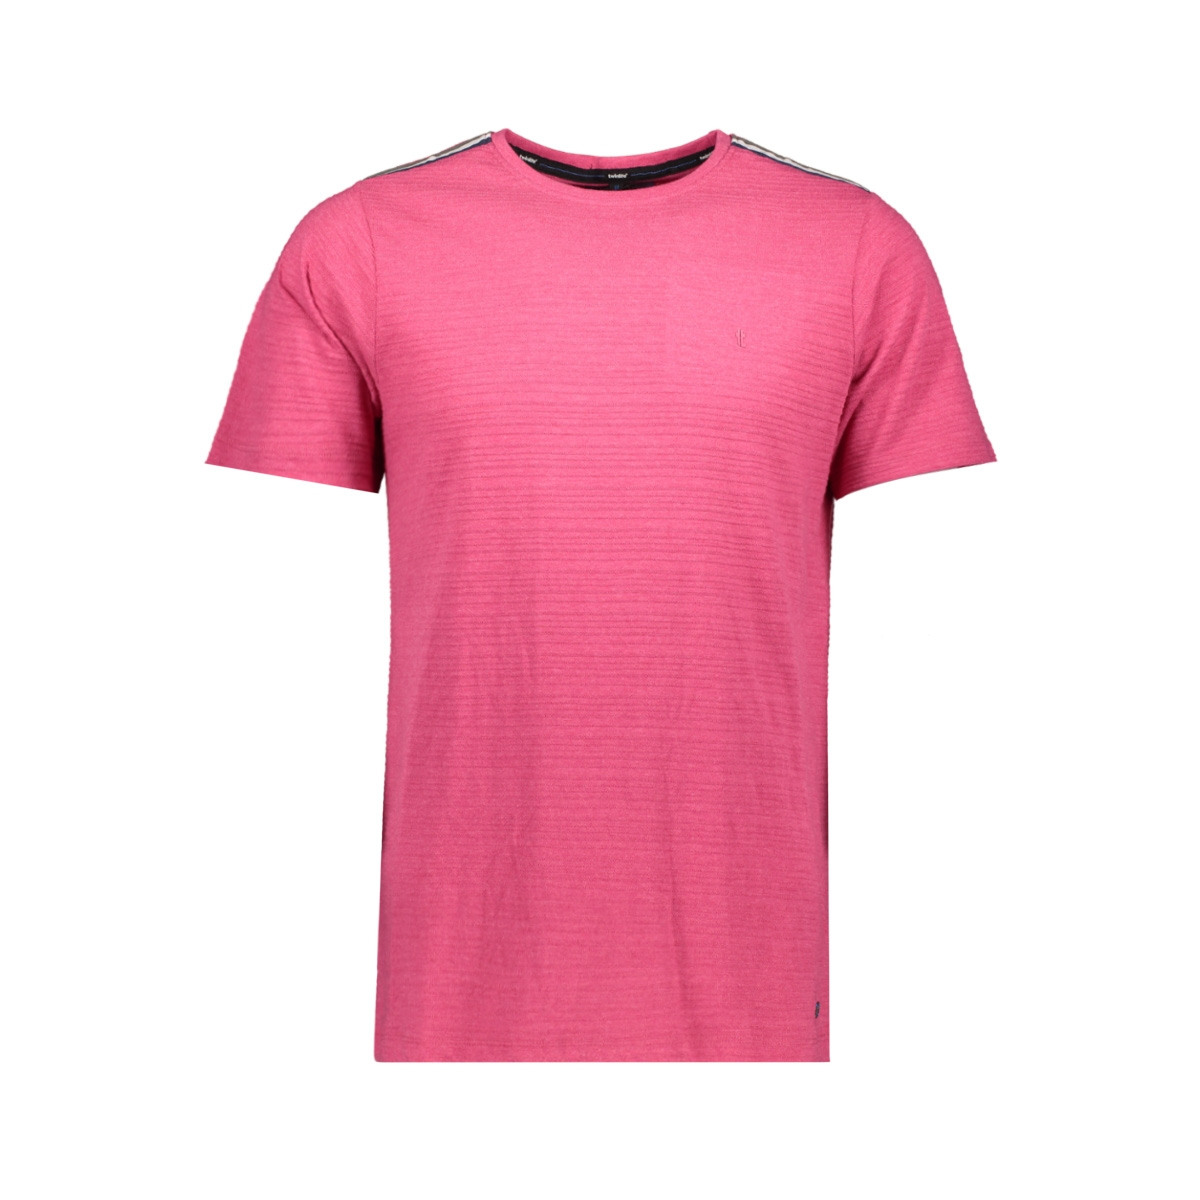 t shirt 1901 5109 m 1 twinlife t-shirt 4592 raspberry